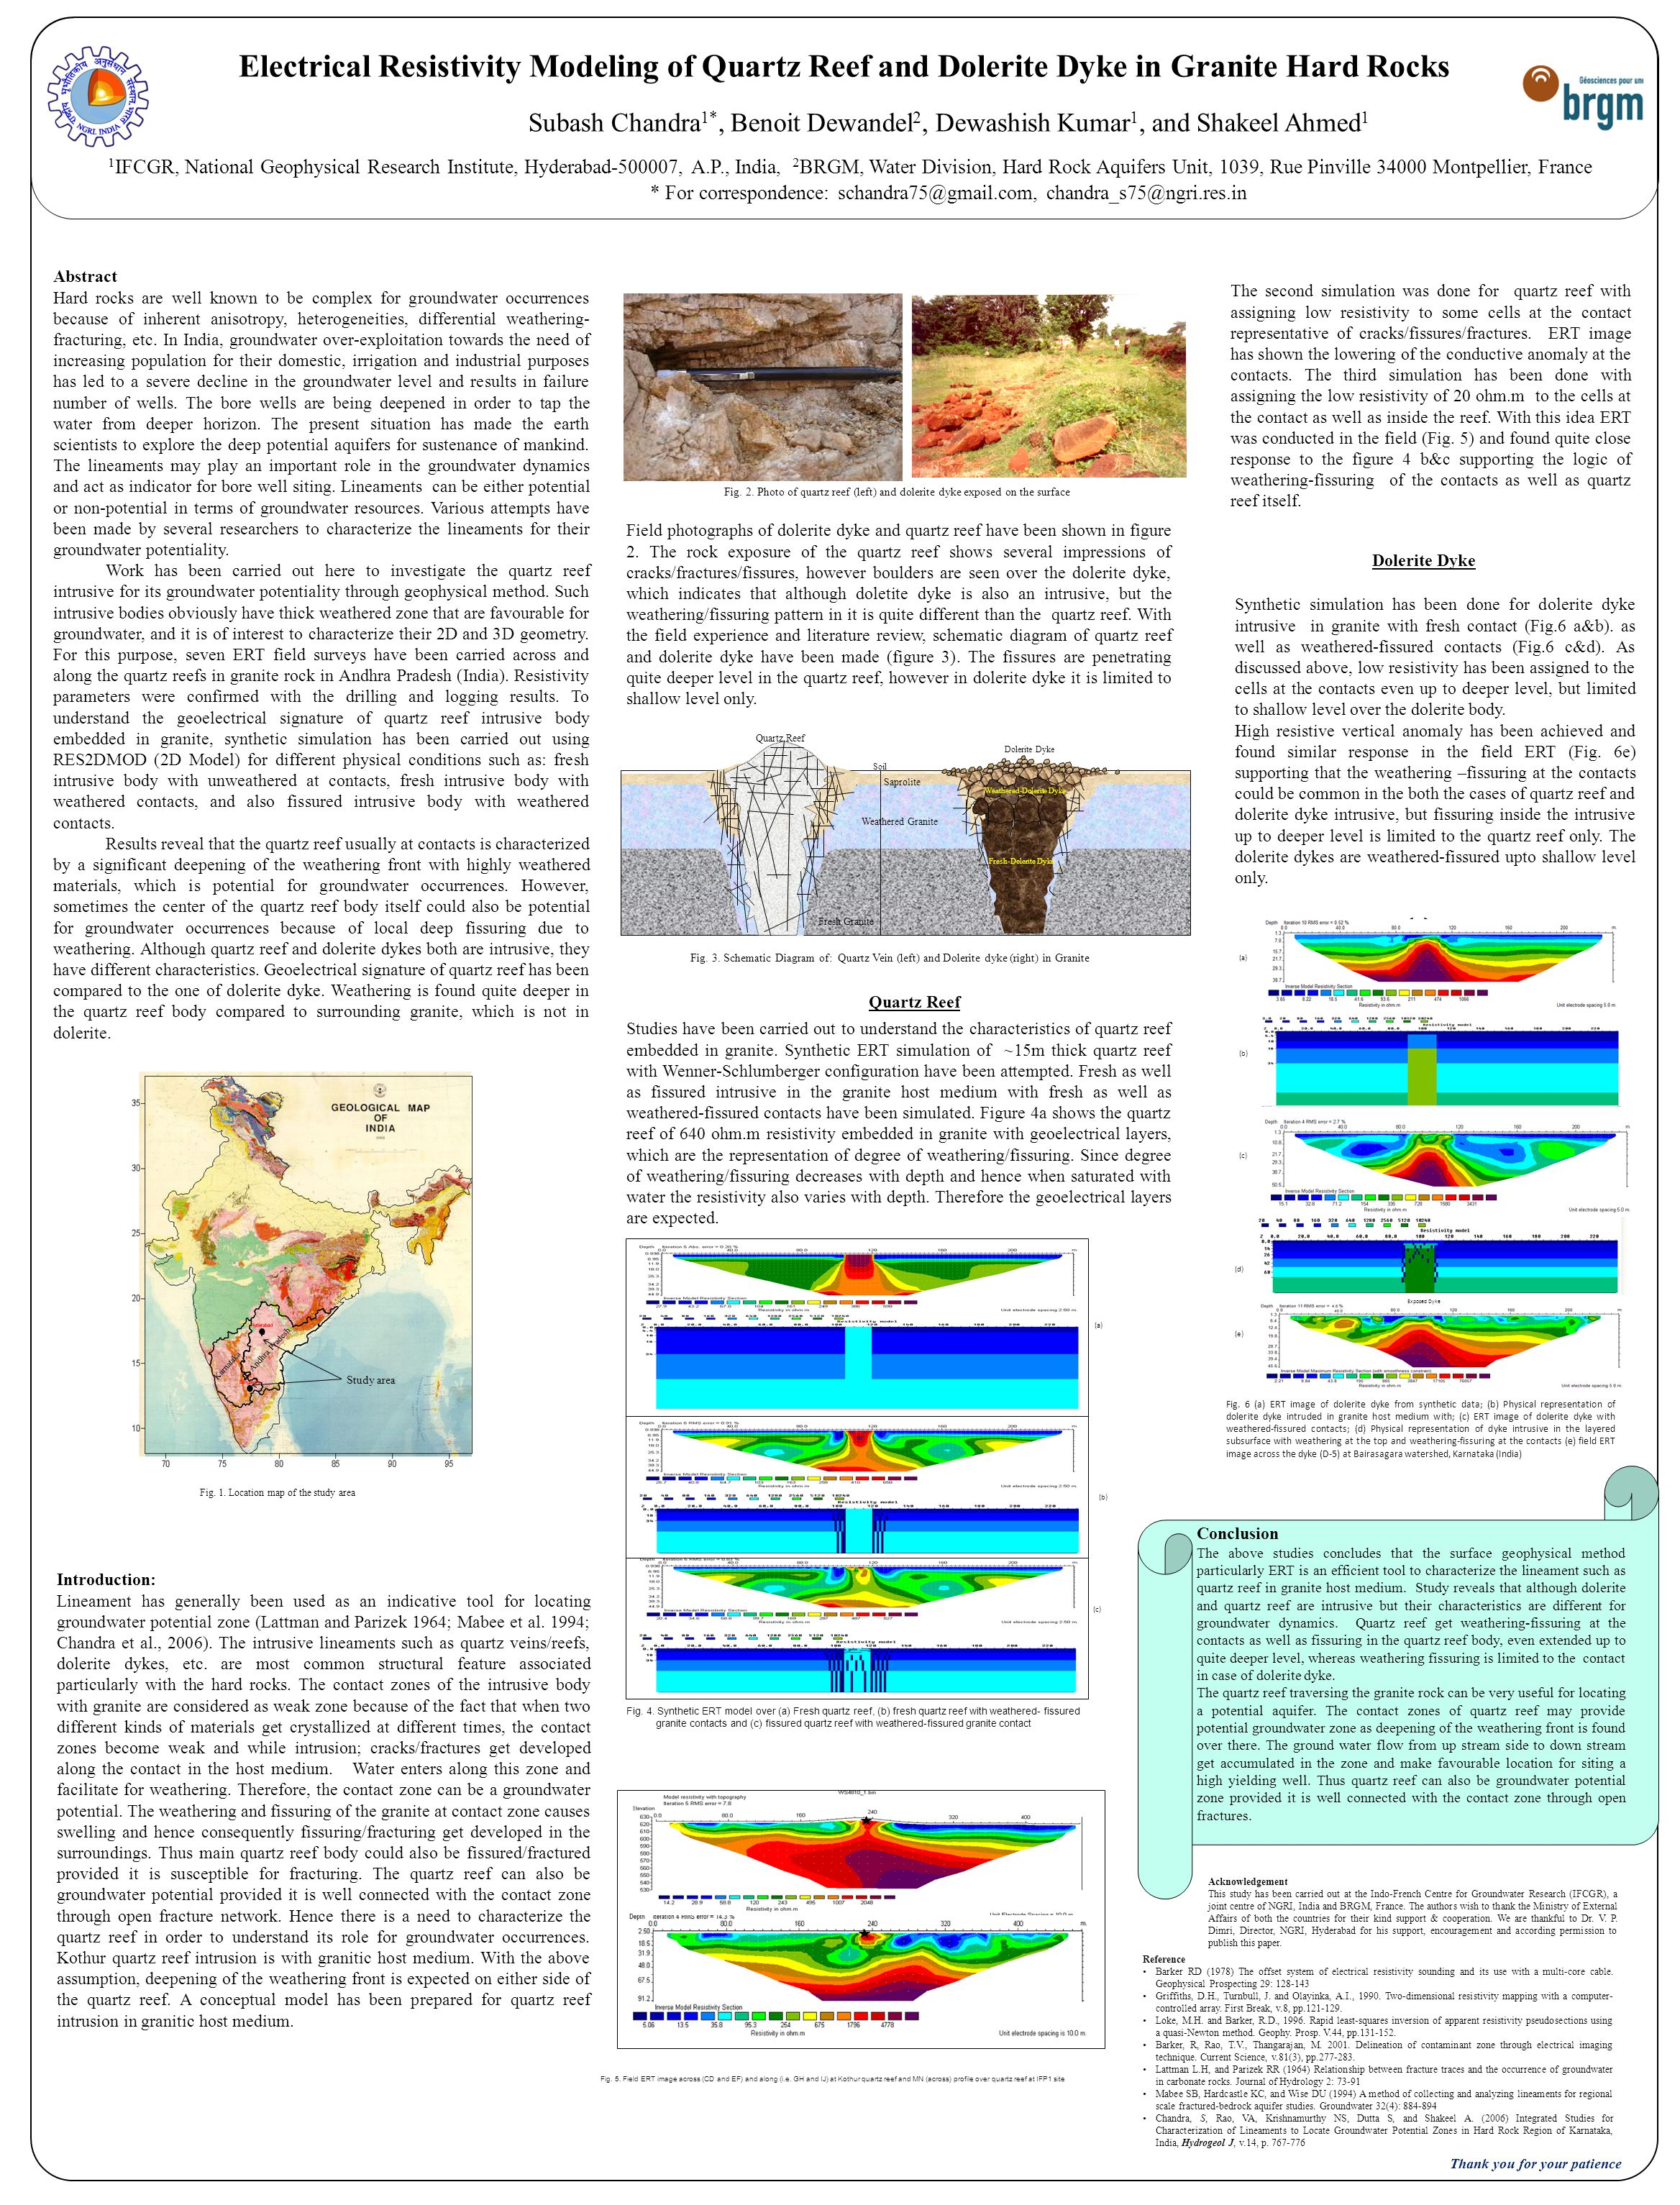 Electrical Resistivity Modeling of Quartz Reef and Dolerite Dyke in Granite Hard Rocks Subash Chandra 1*, Benoit Dewandel 2, Dewashish Kumar 1, and Sh